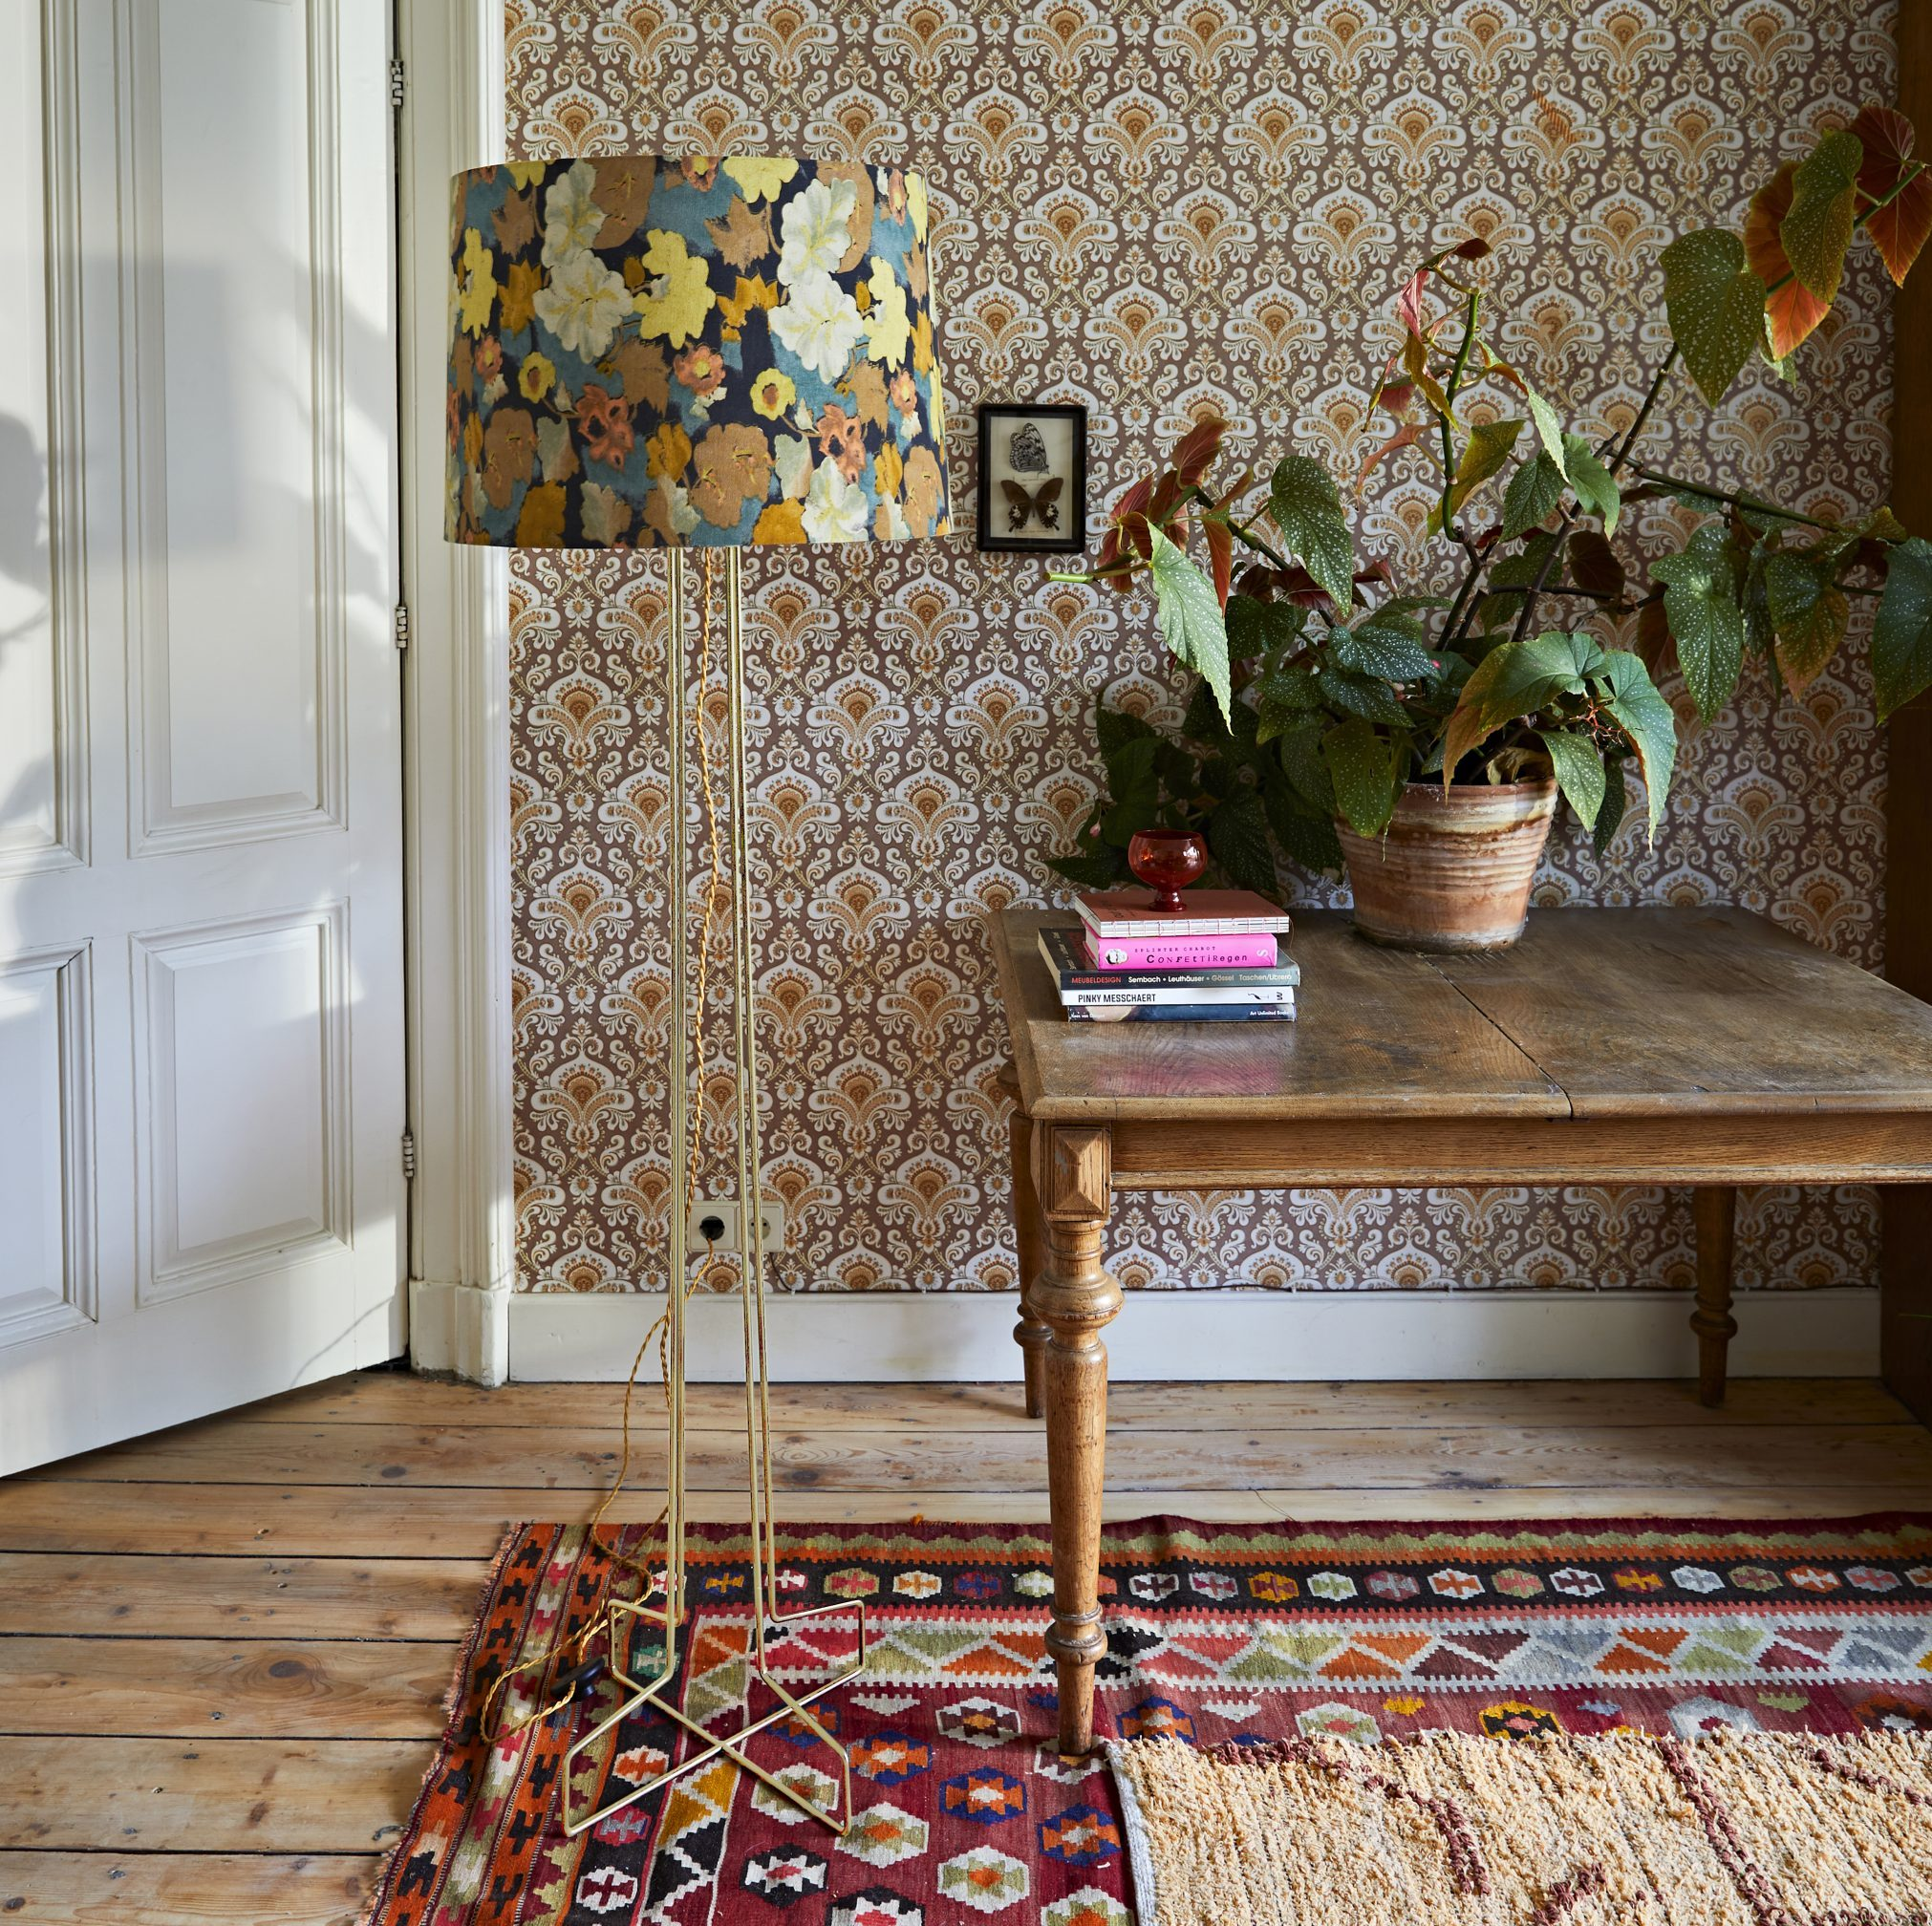 How to clash prints and patterns